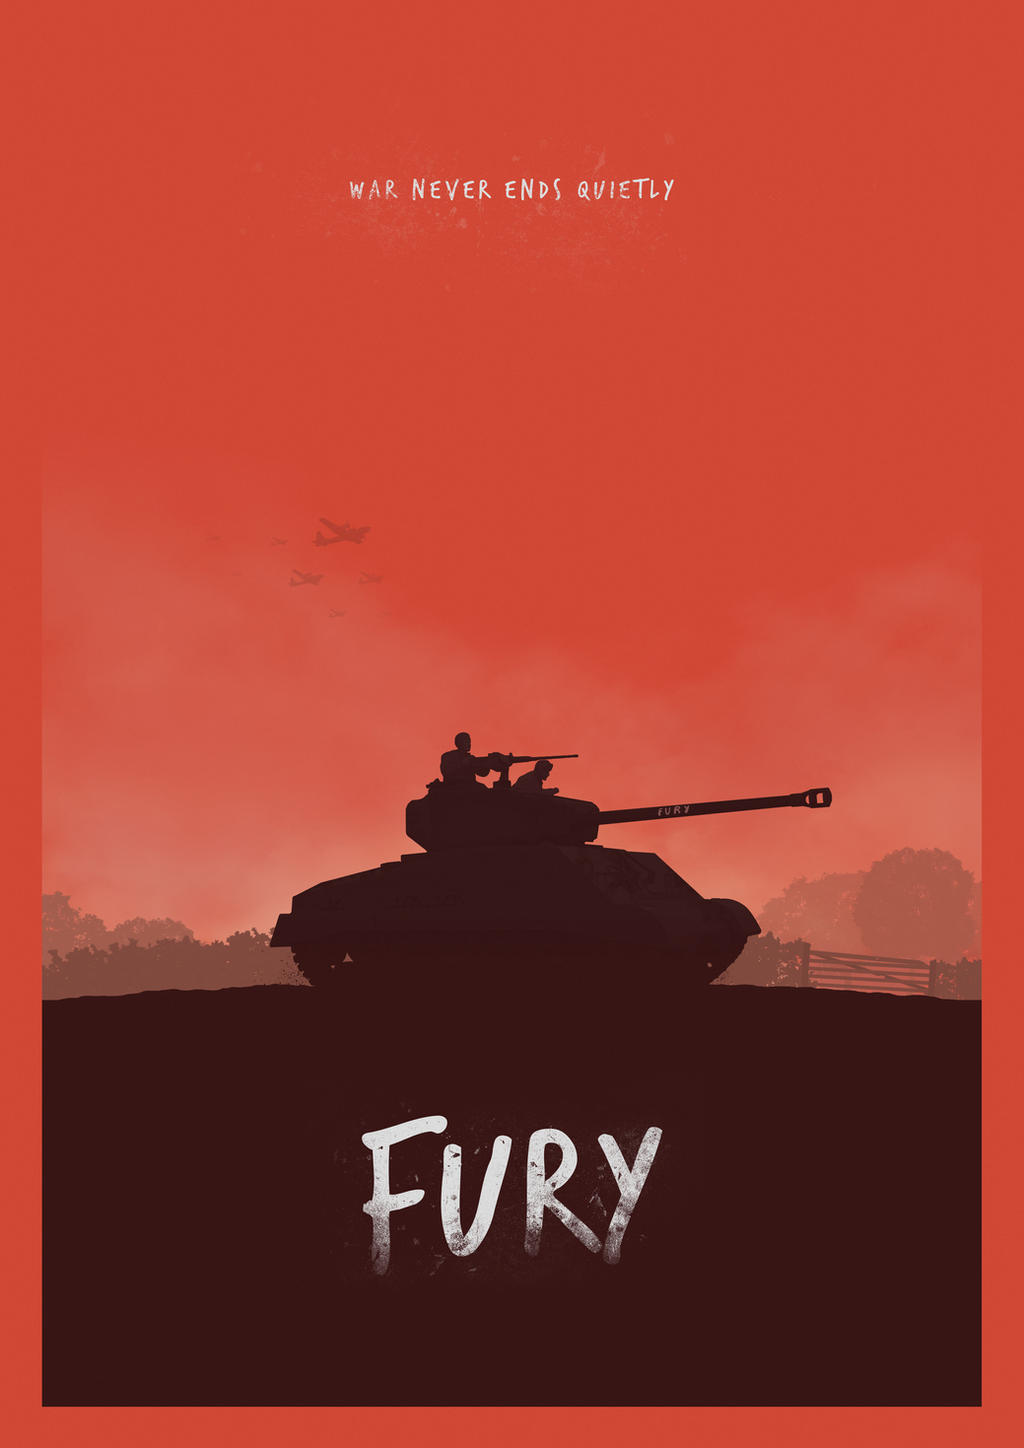 best job i ever had fury poster by deluxepepsi on best job i ever had fury poster by deluxepepsi